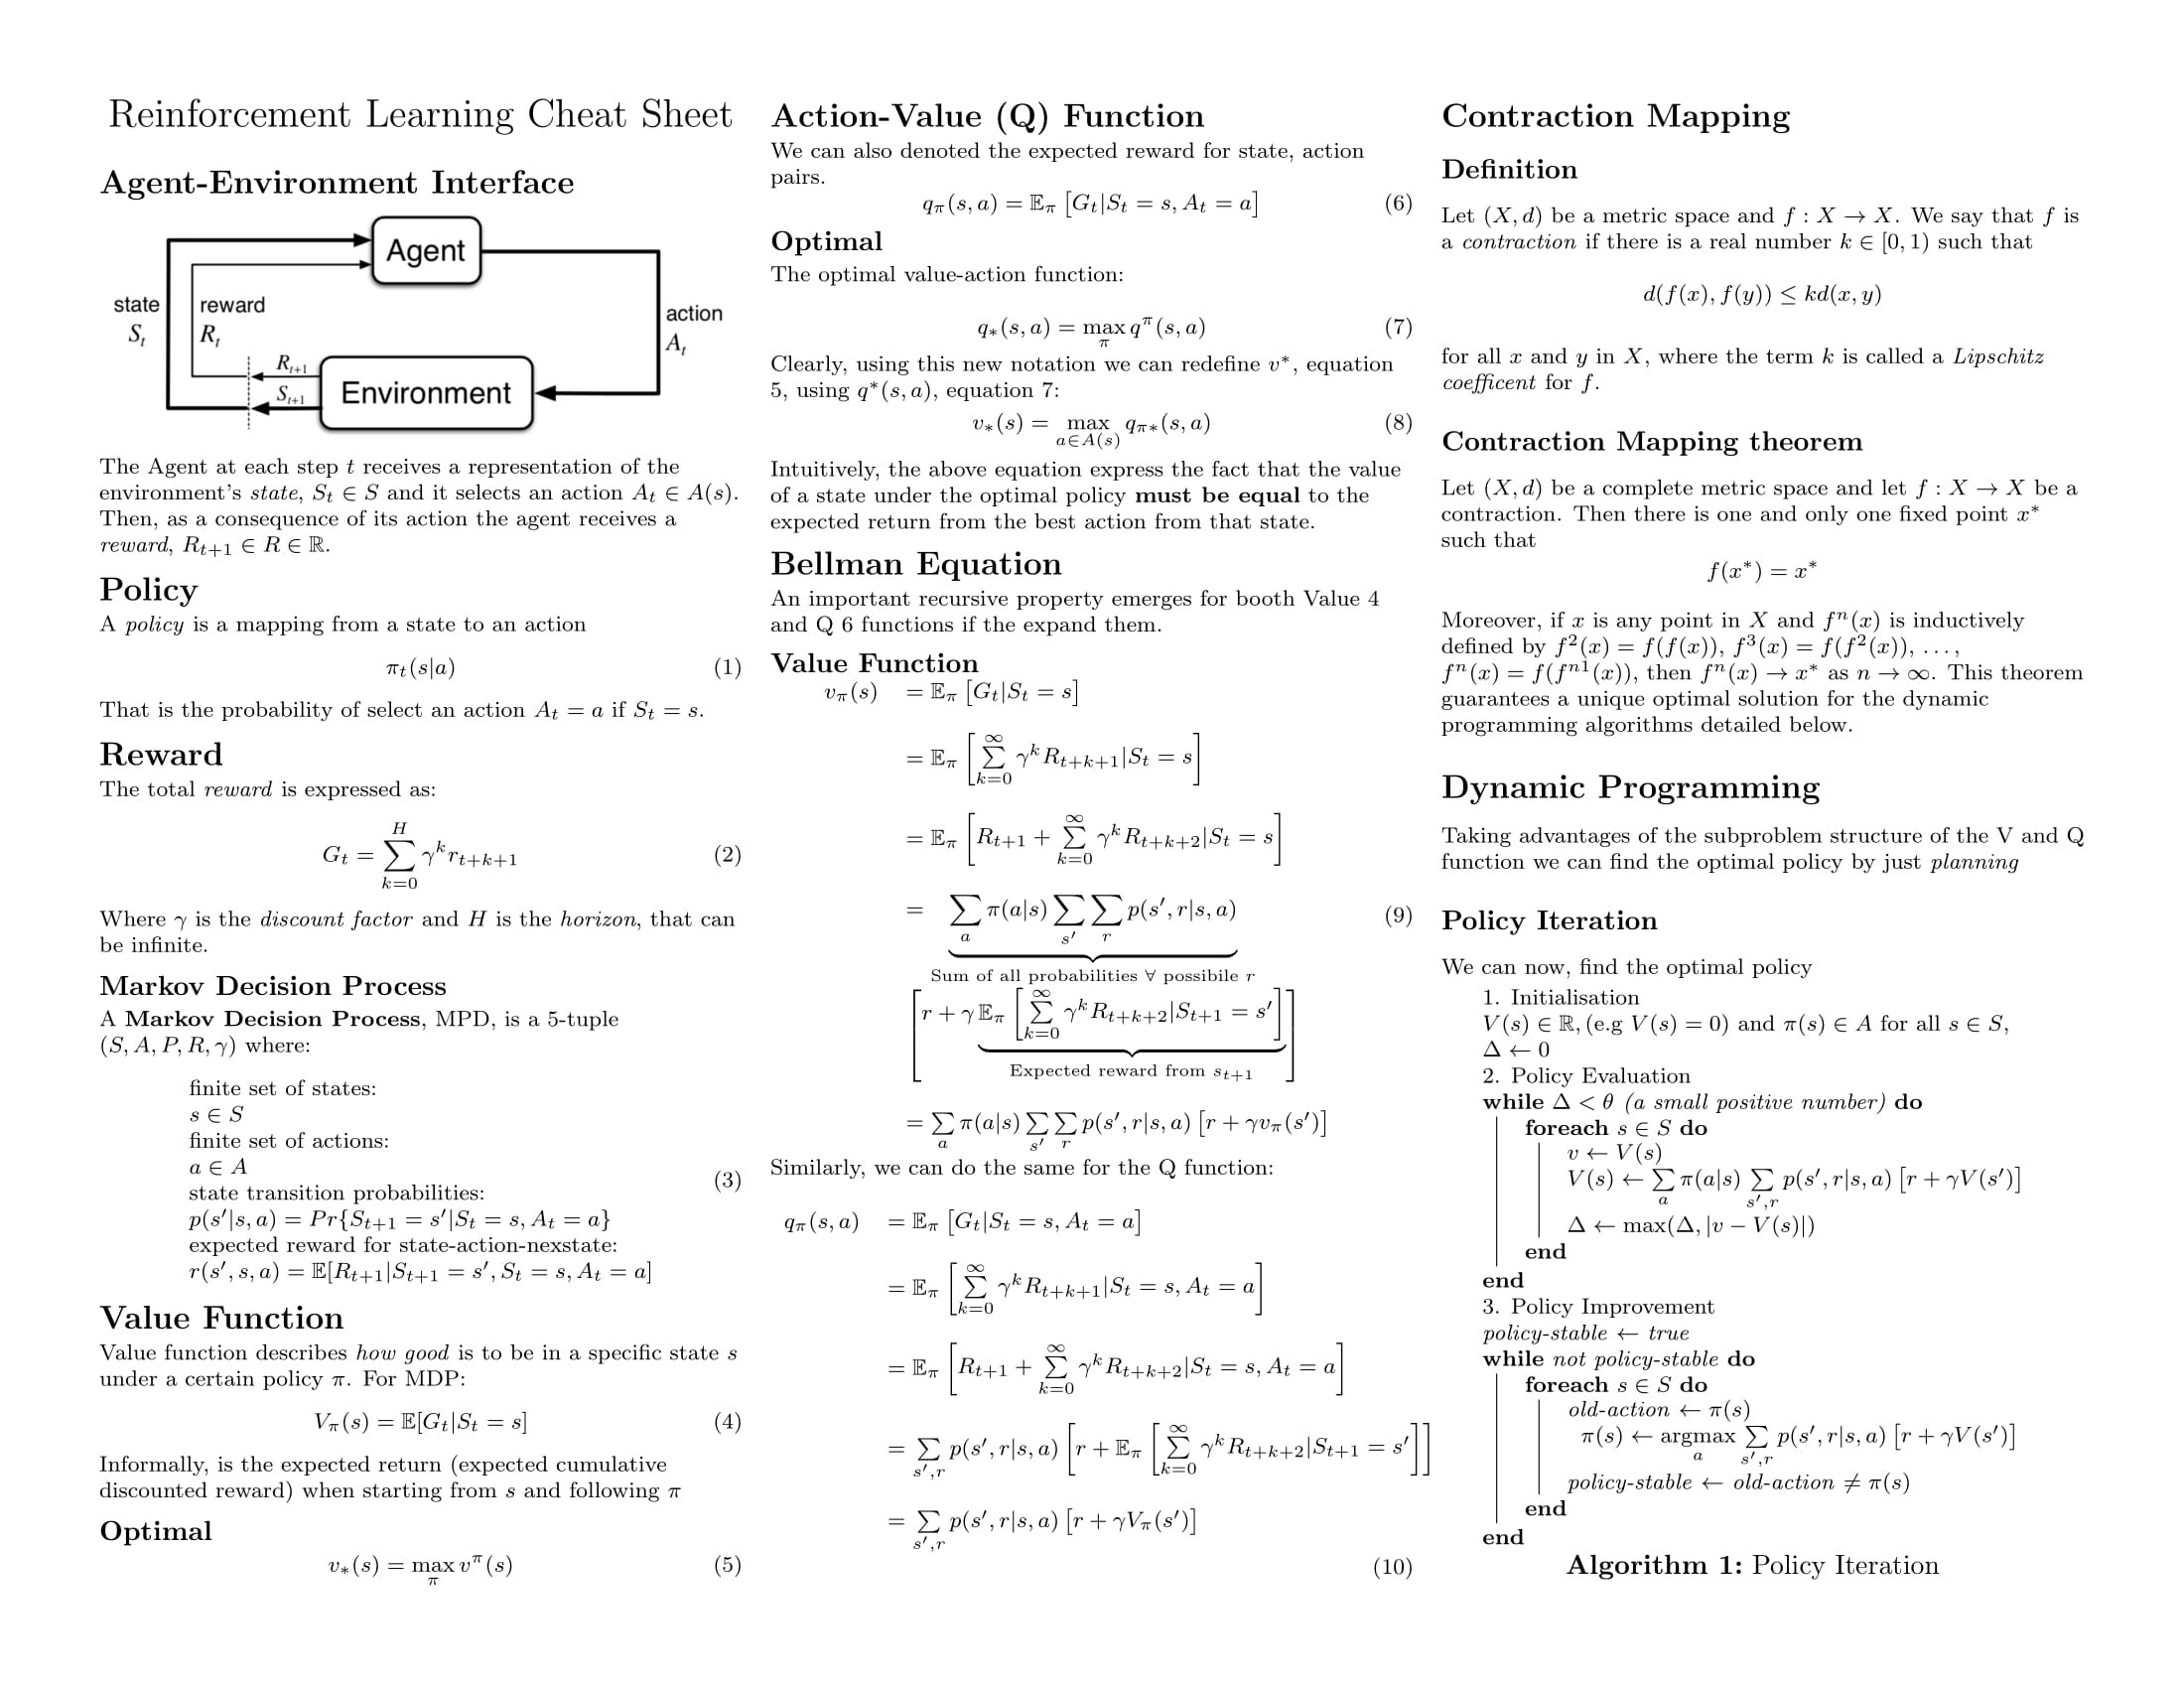 Reinforcement Learning Cheat Sheet Towards Data Science